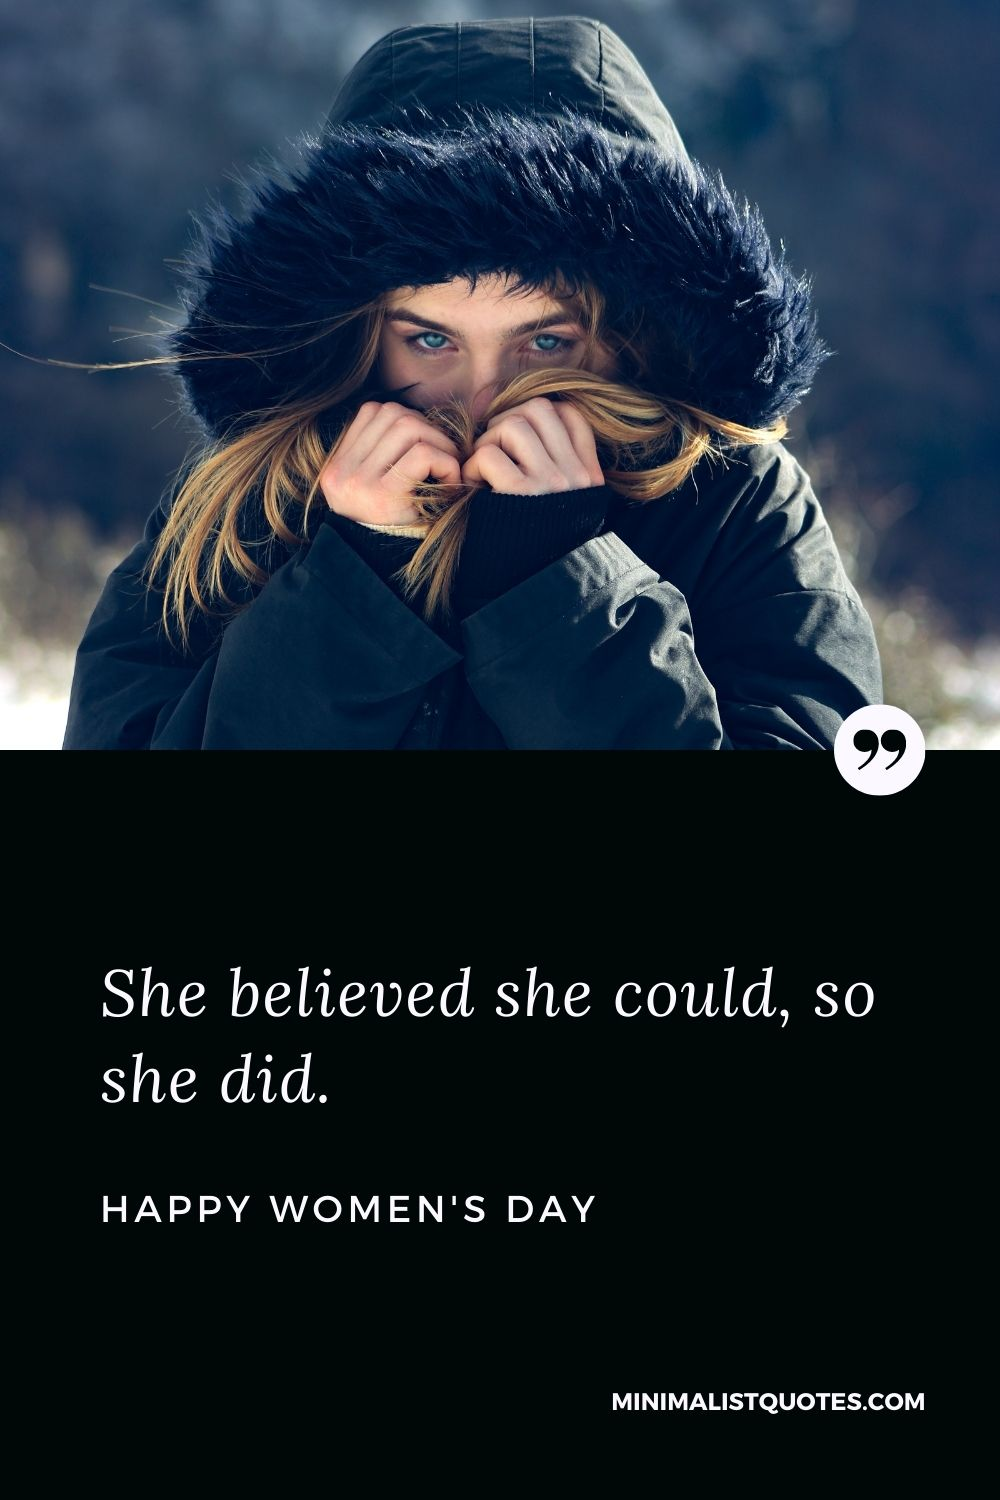 Women's Day Wish & Message With Image: She believed she could, so she did.